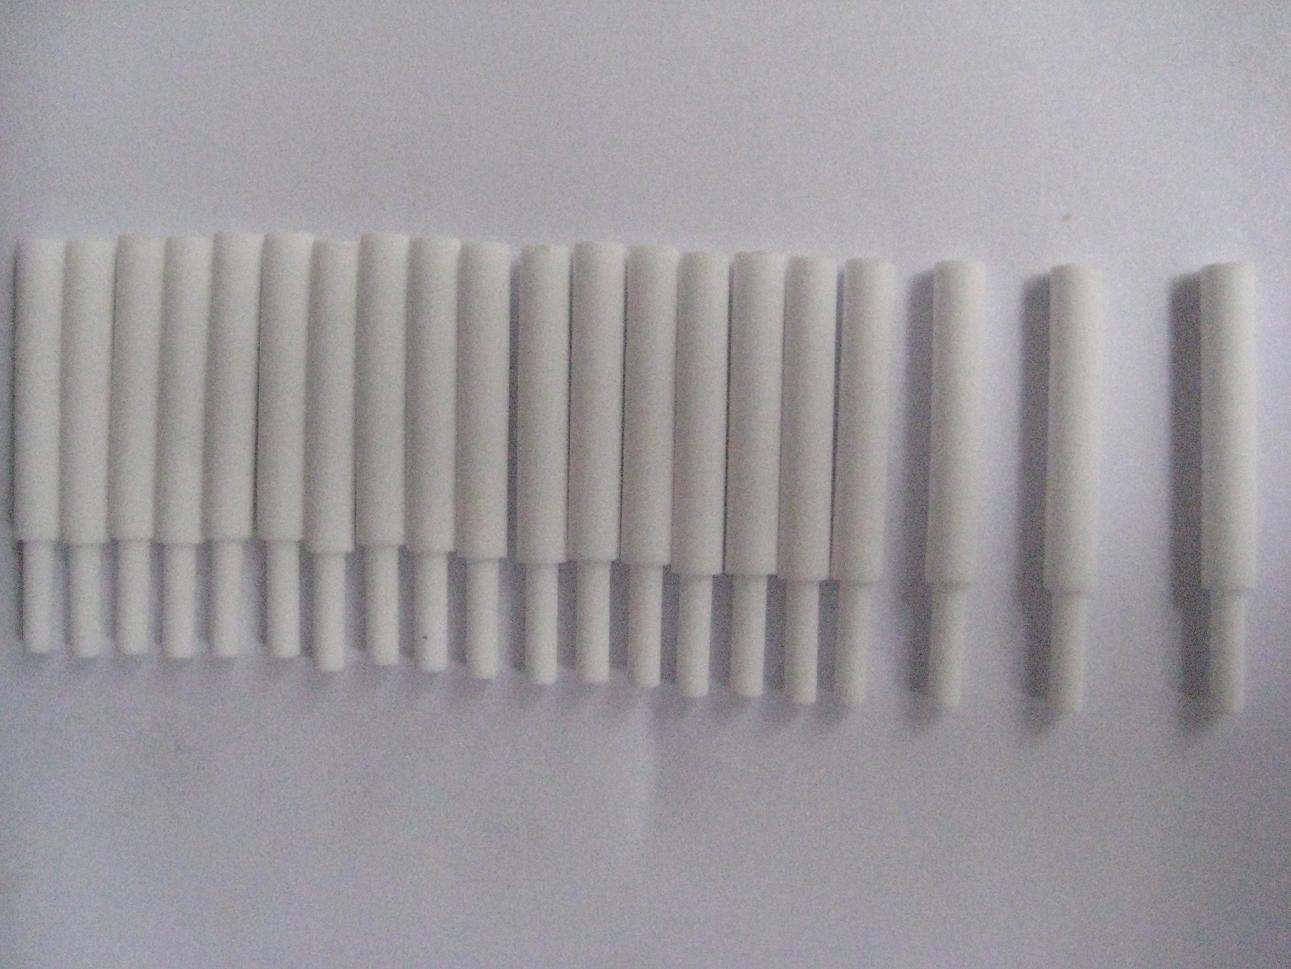 Ceramic Pins for Ceramic Honeycomb Firing Tray,20pcs/bag